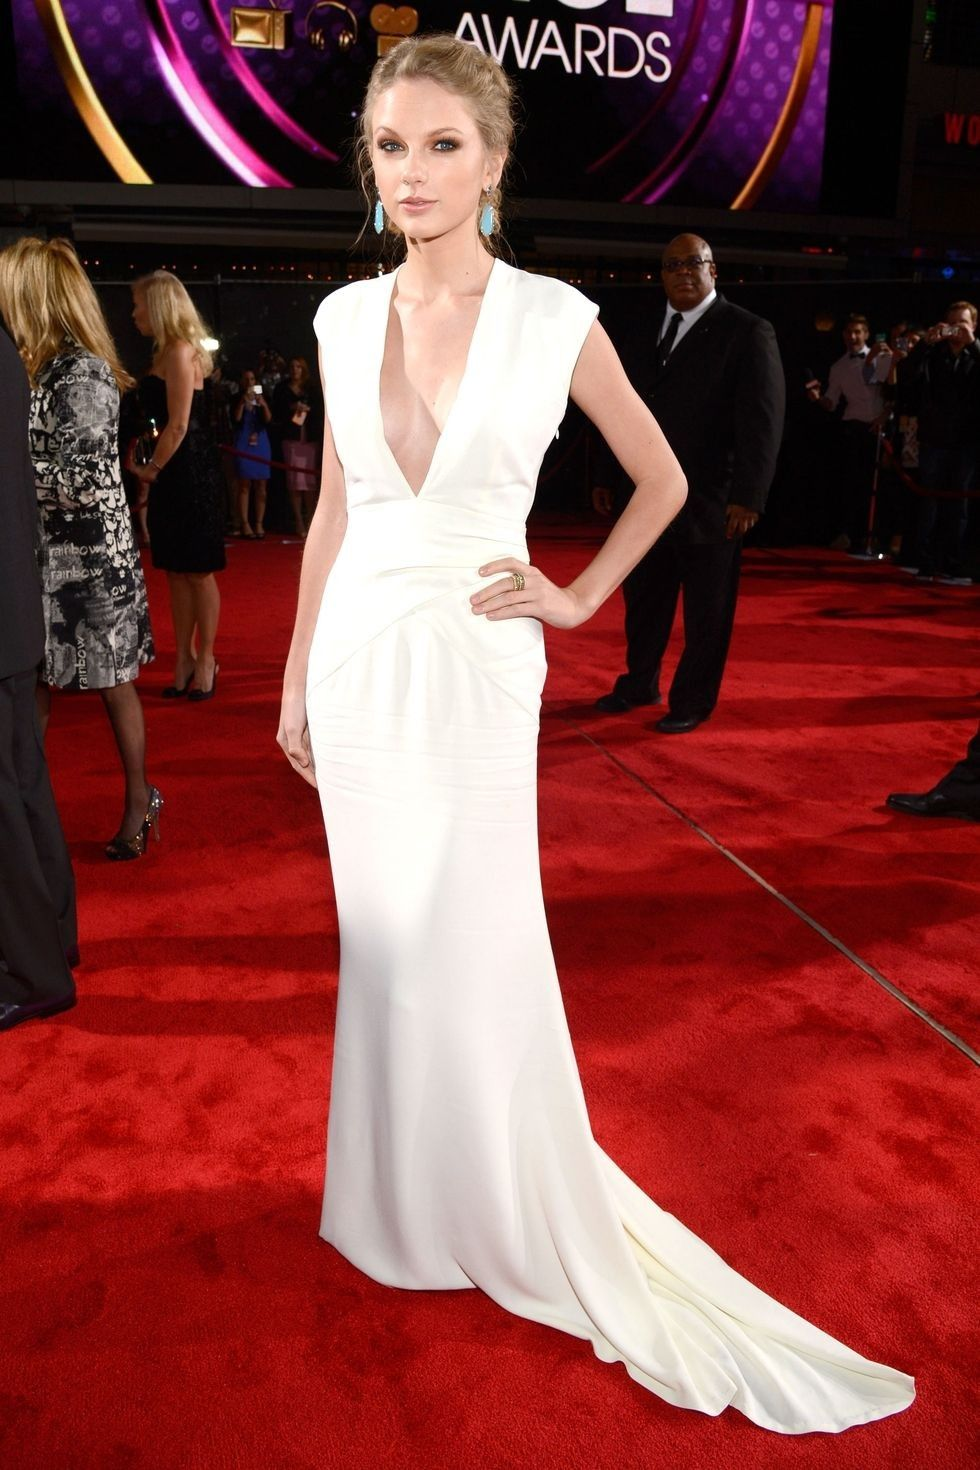 Taylor Swifts Best Red Carpet Moments   Vogue